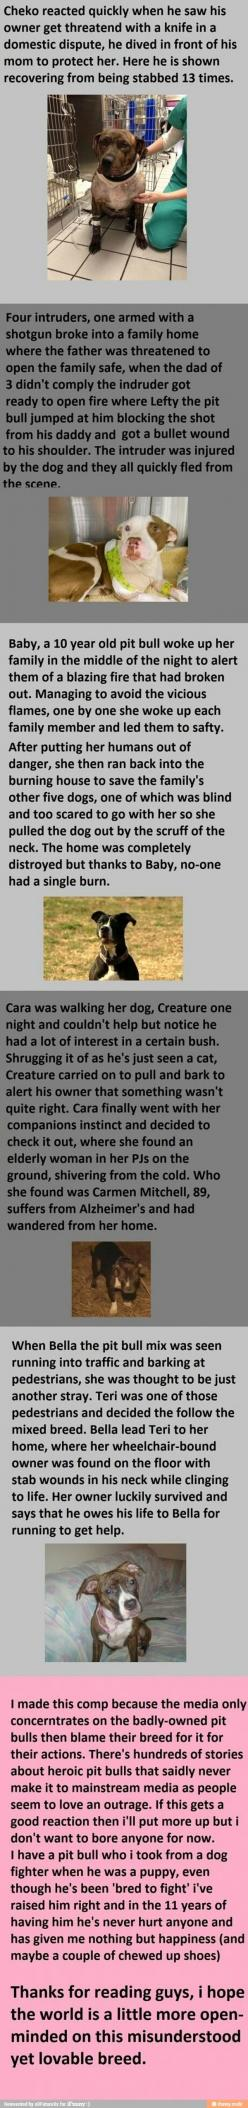 Lots of spelling errors in this, but super sweet nonetheless. Dogs are amazing.: Amazing Stories, Pitt Bulls, Heart Of Gold, Hero, Dog, Pittbull, Animal